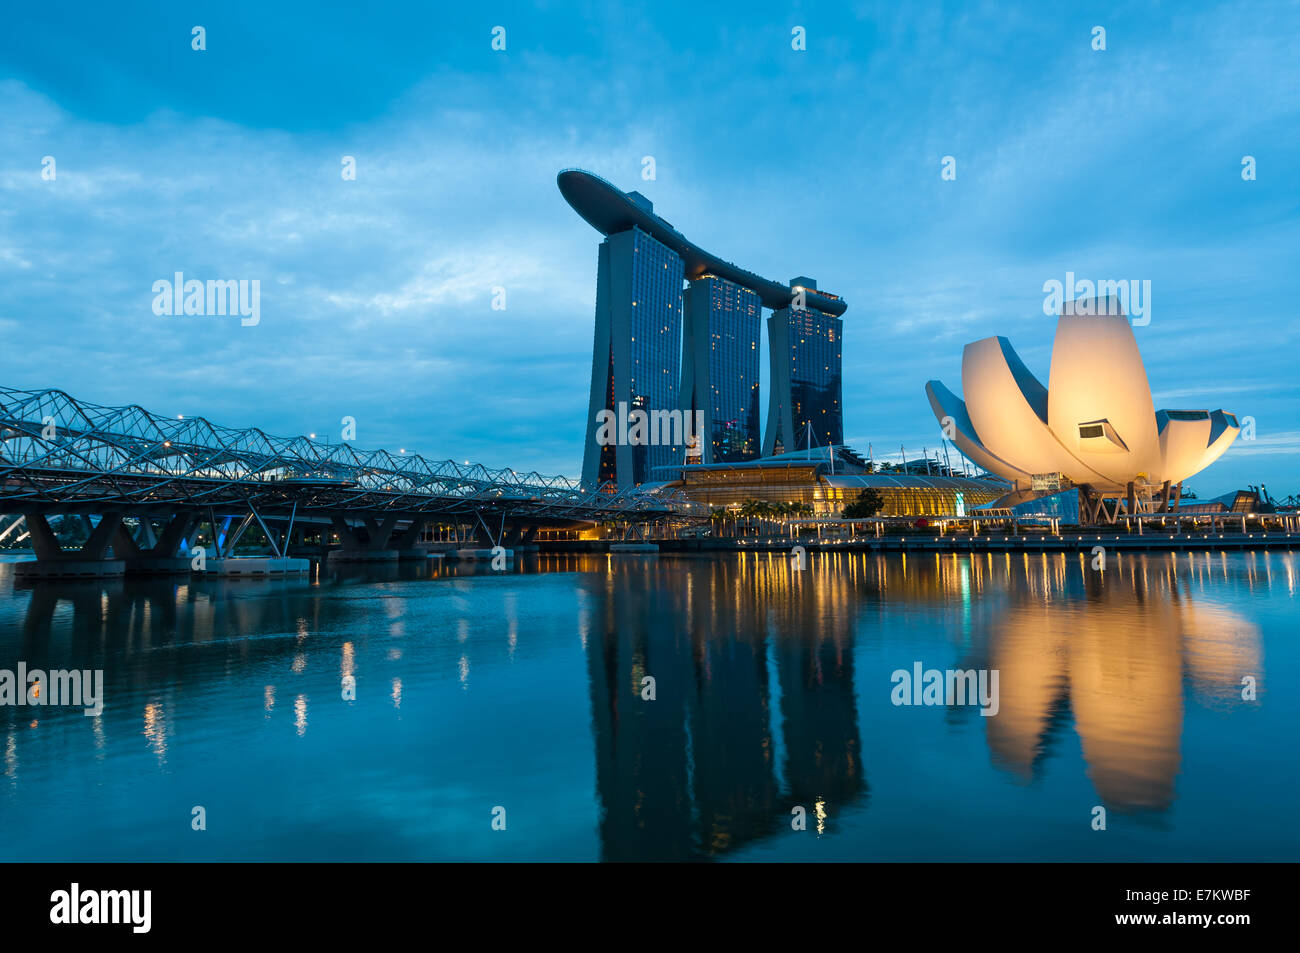 The Marina Bay Sands hotel and Artscience Museum in early morning. - Stock Image